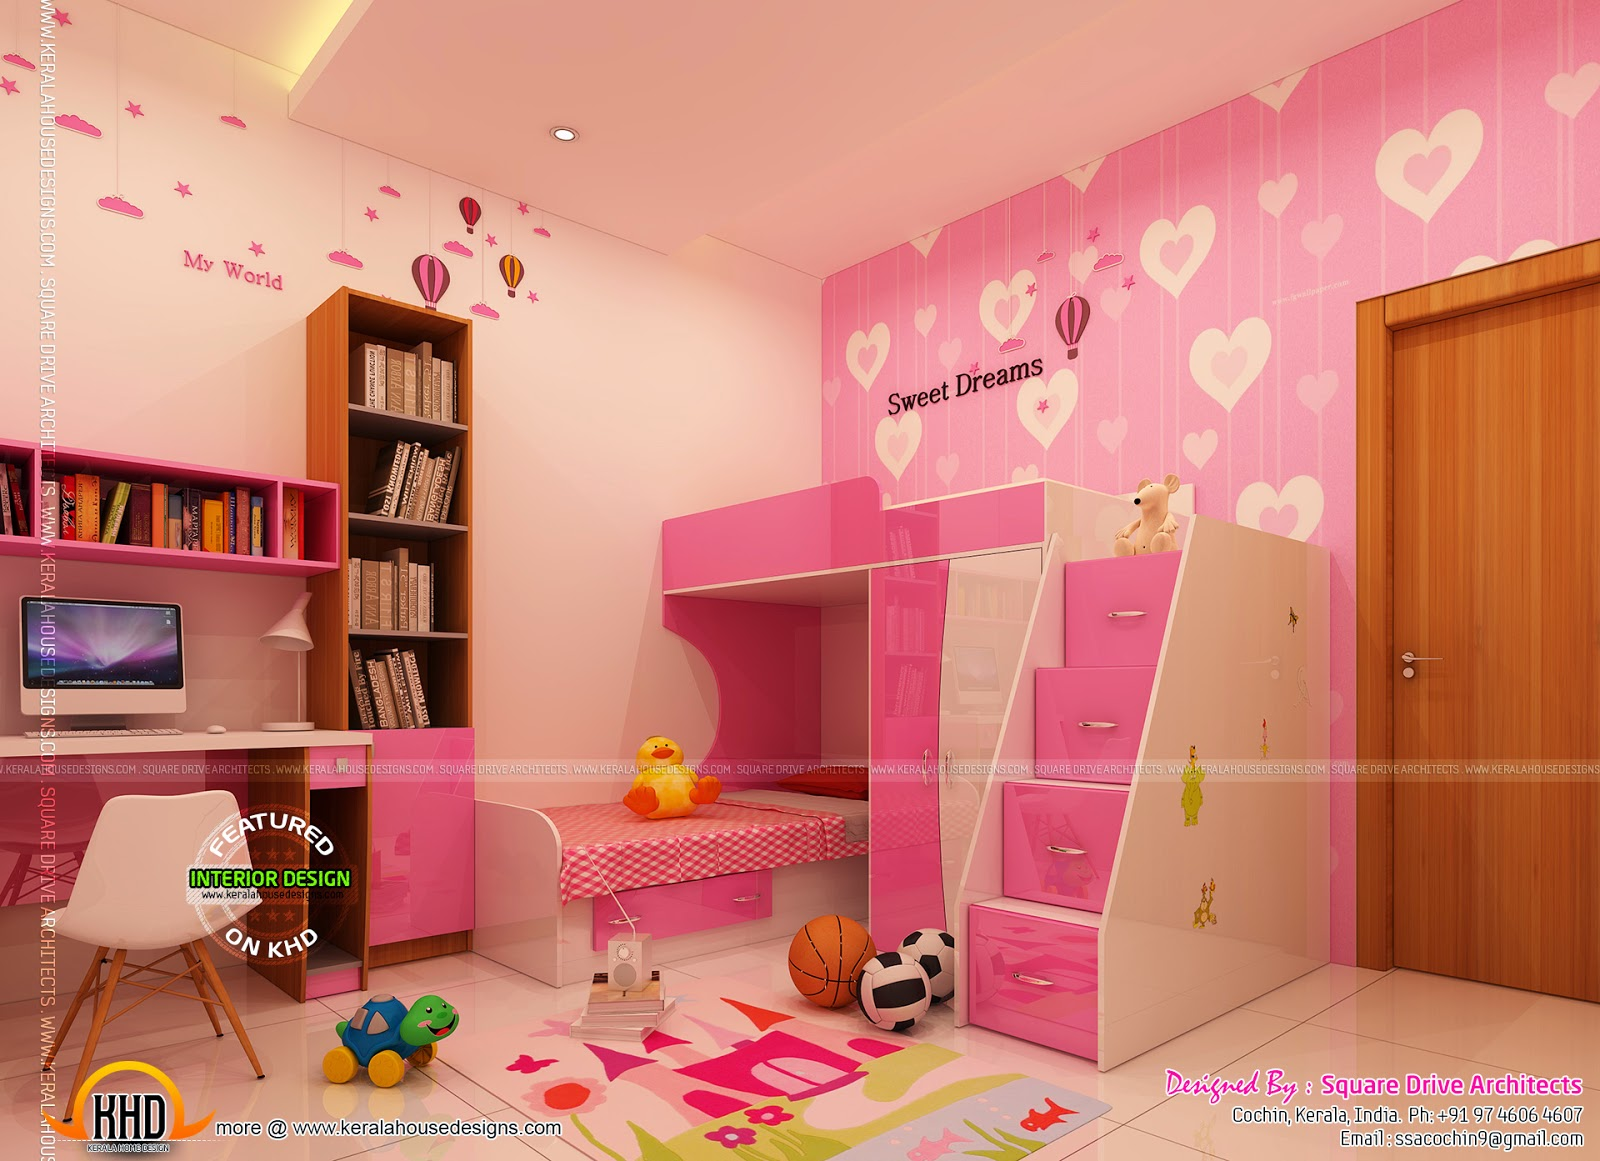 Home interiors designs kerala home design and floor plans - Kids room image ...